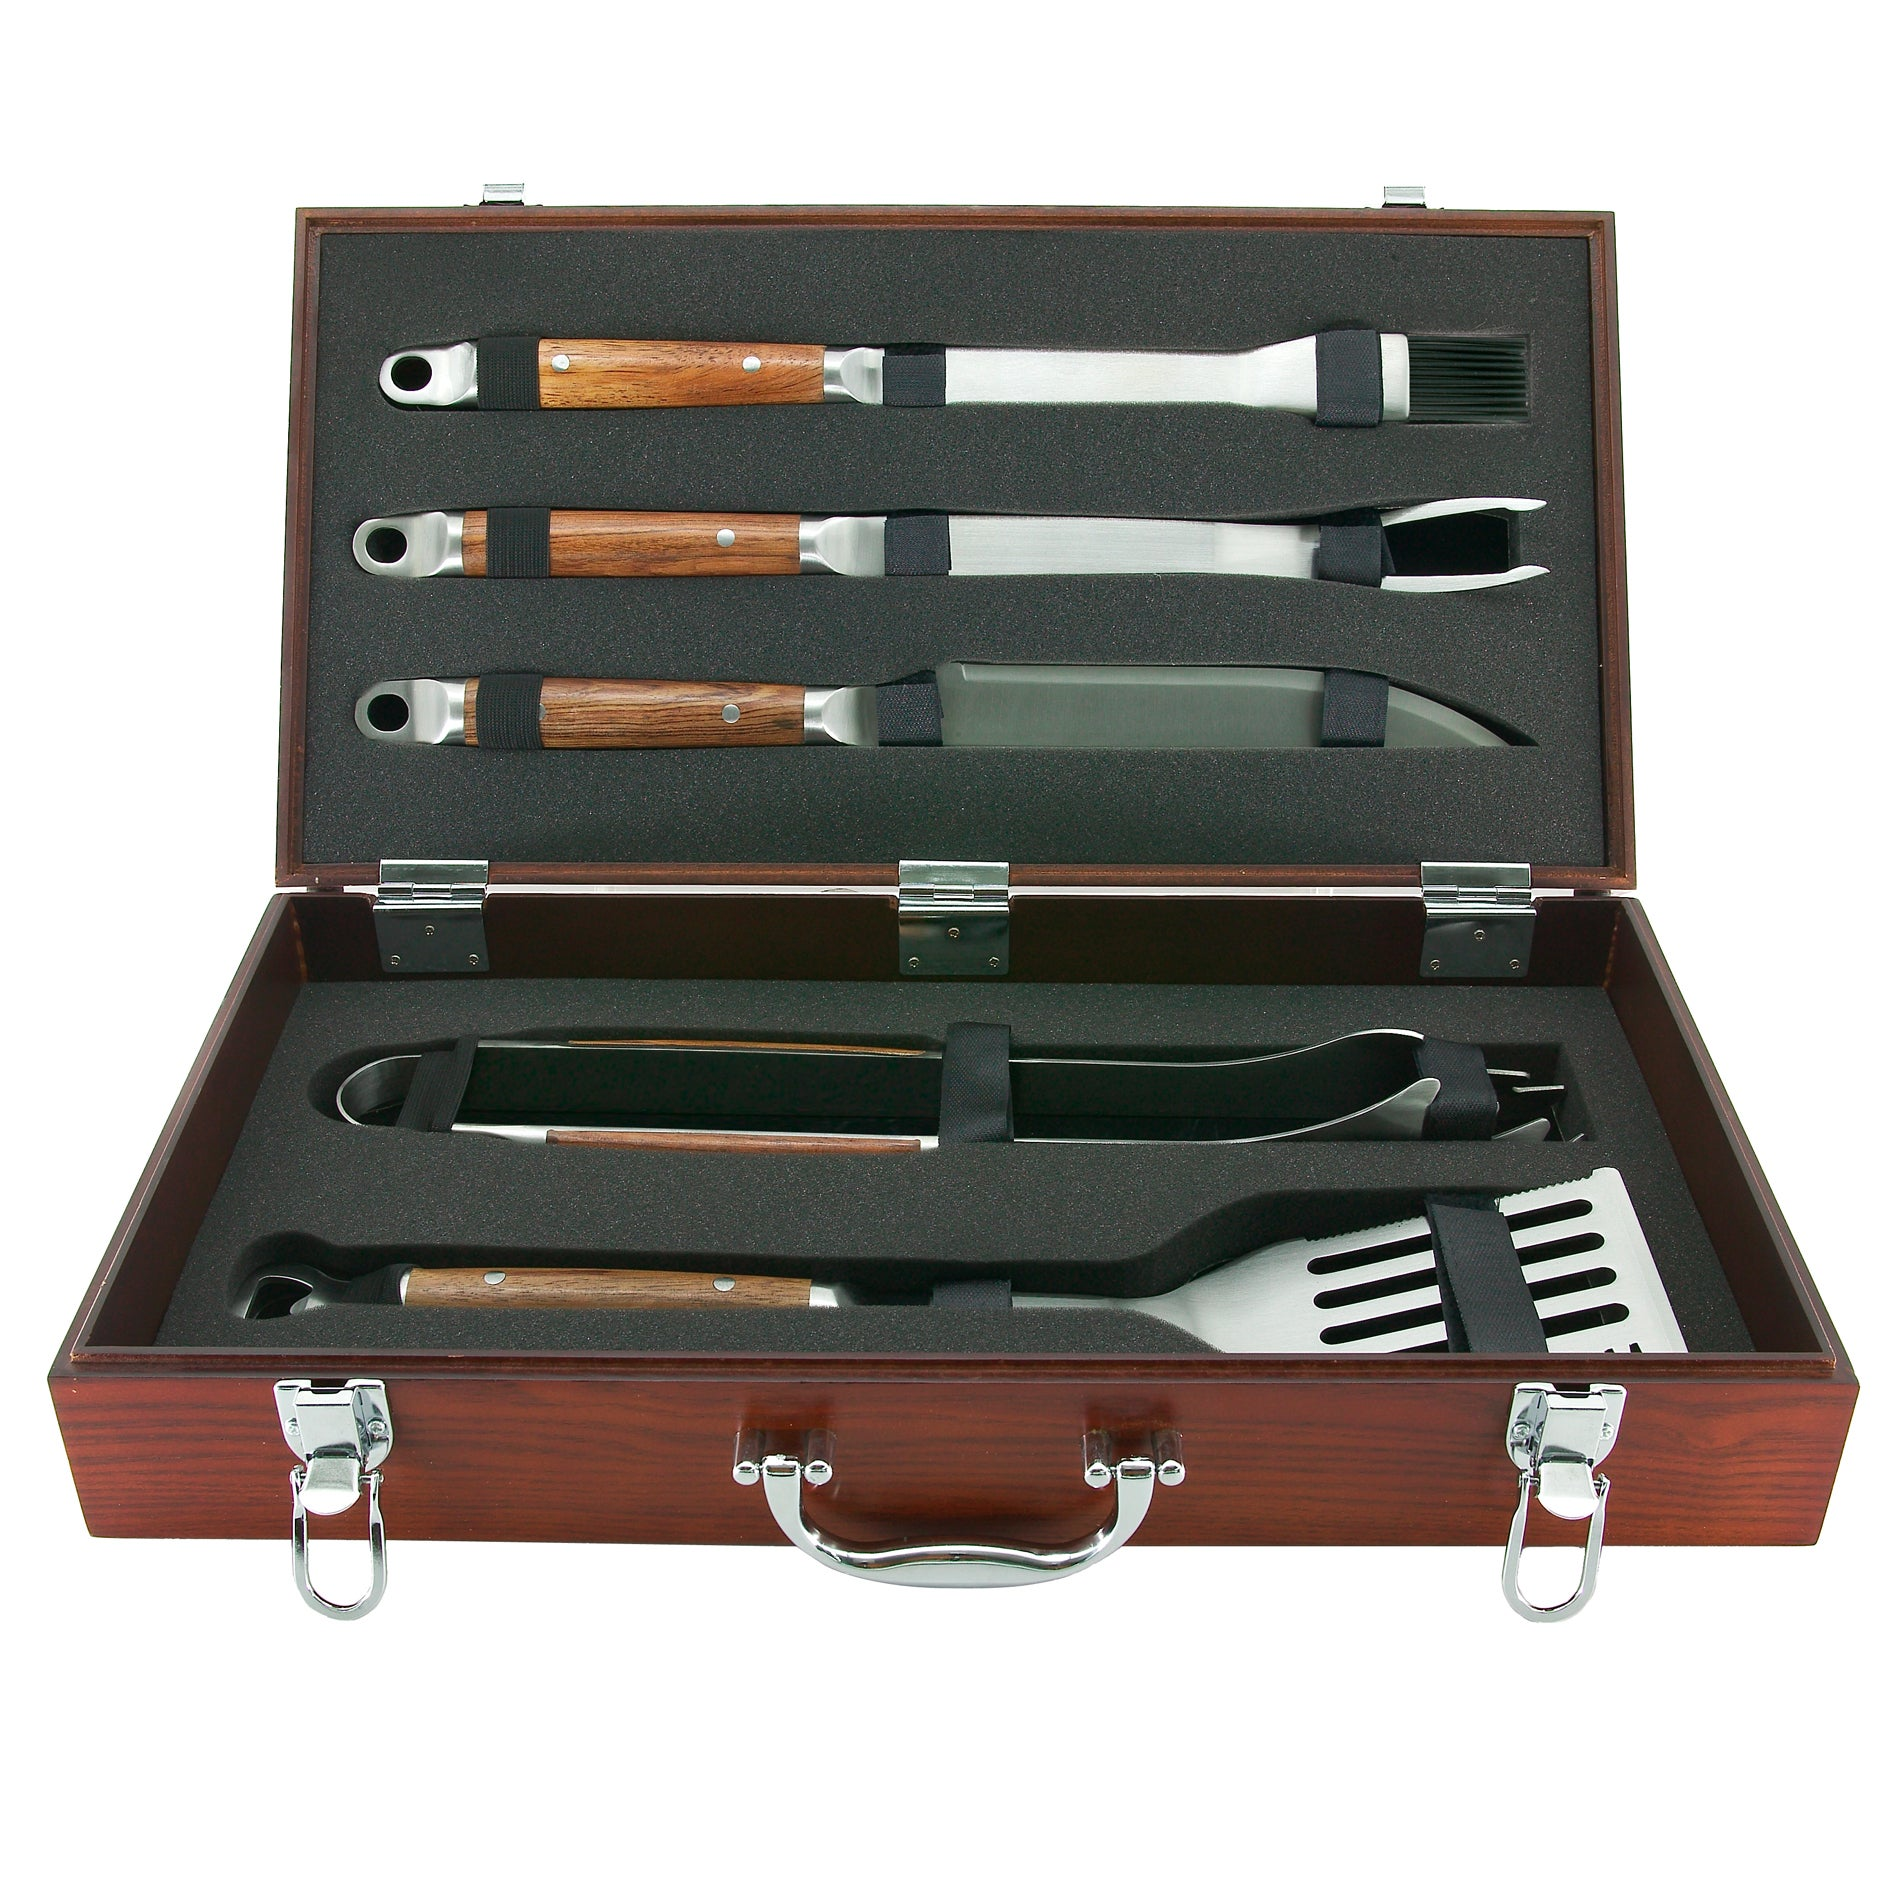 Mr. BBQ Forged 5-piece Stainlees Steel Grilling Set